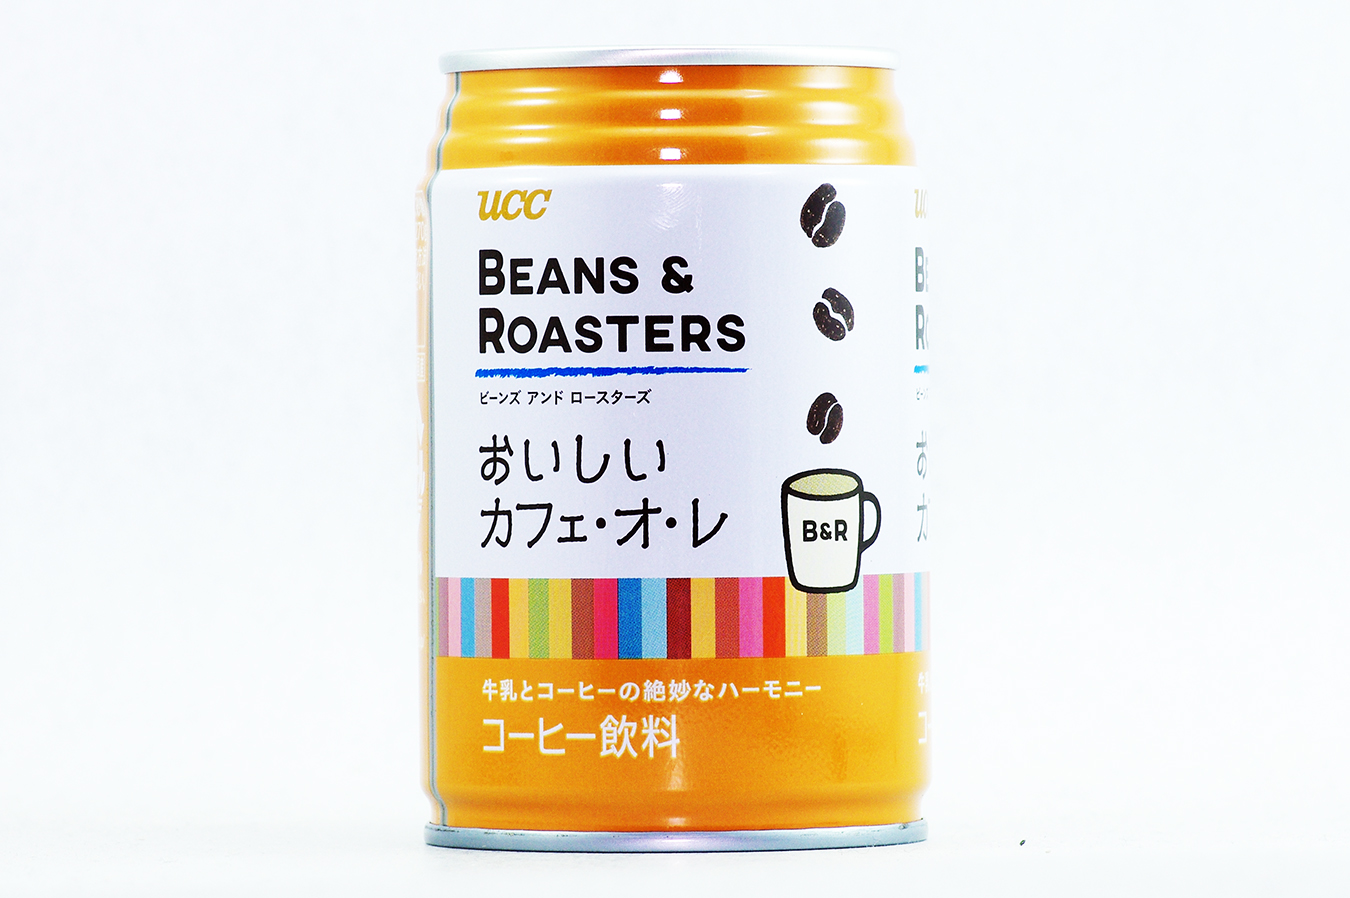 UCC BEANS & ROASTERS おいしいカフェ・オ・レ 2018年6月